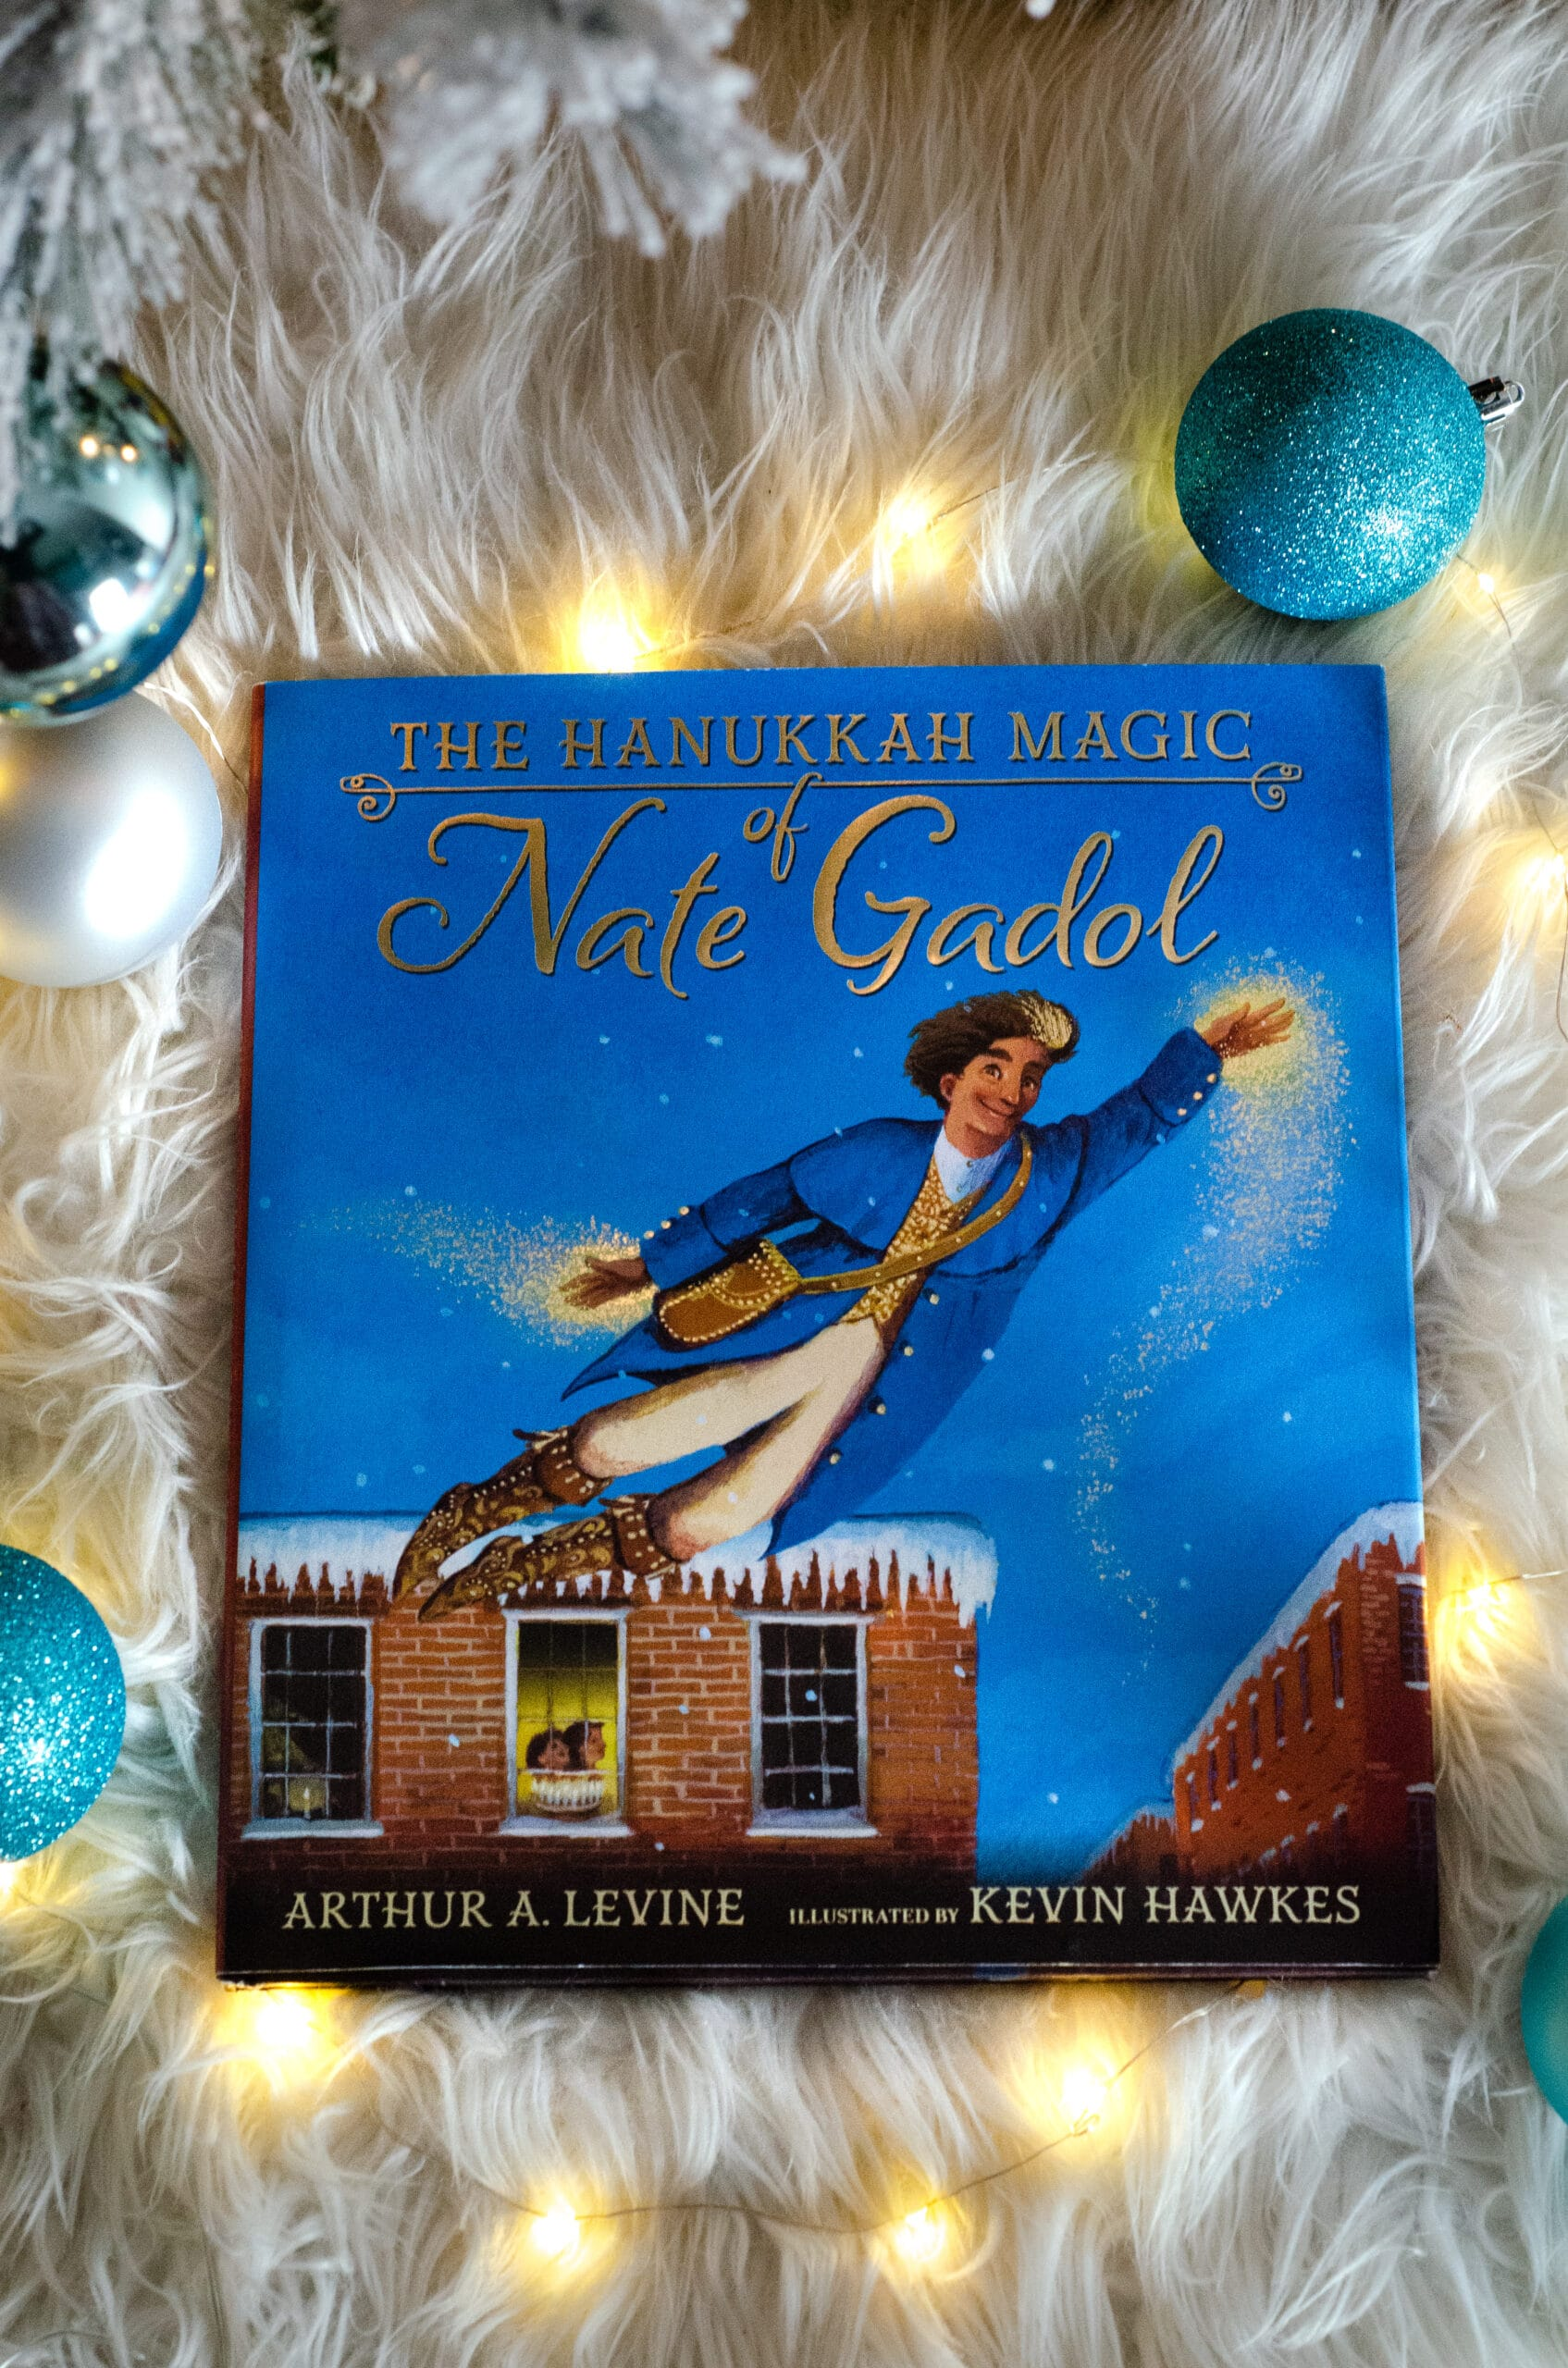 Hanukkah Magic of Nate Gadol. Give the gift of literature this holiday season! These wonderful holiday books for kids make great stocking stuffer gifts. Create your very own Christmas Tree Advent Calander using these Children's holiday books, simply stack them into a tree for a new fun holiday tradition.